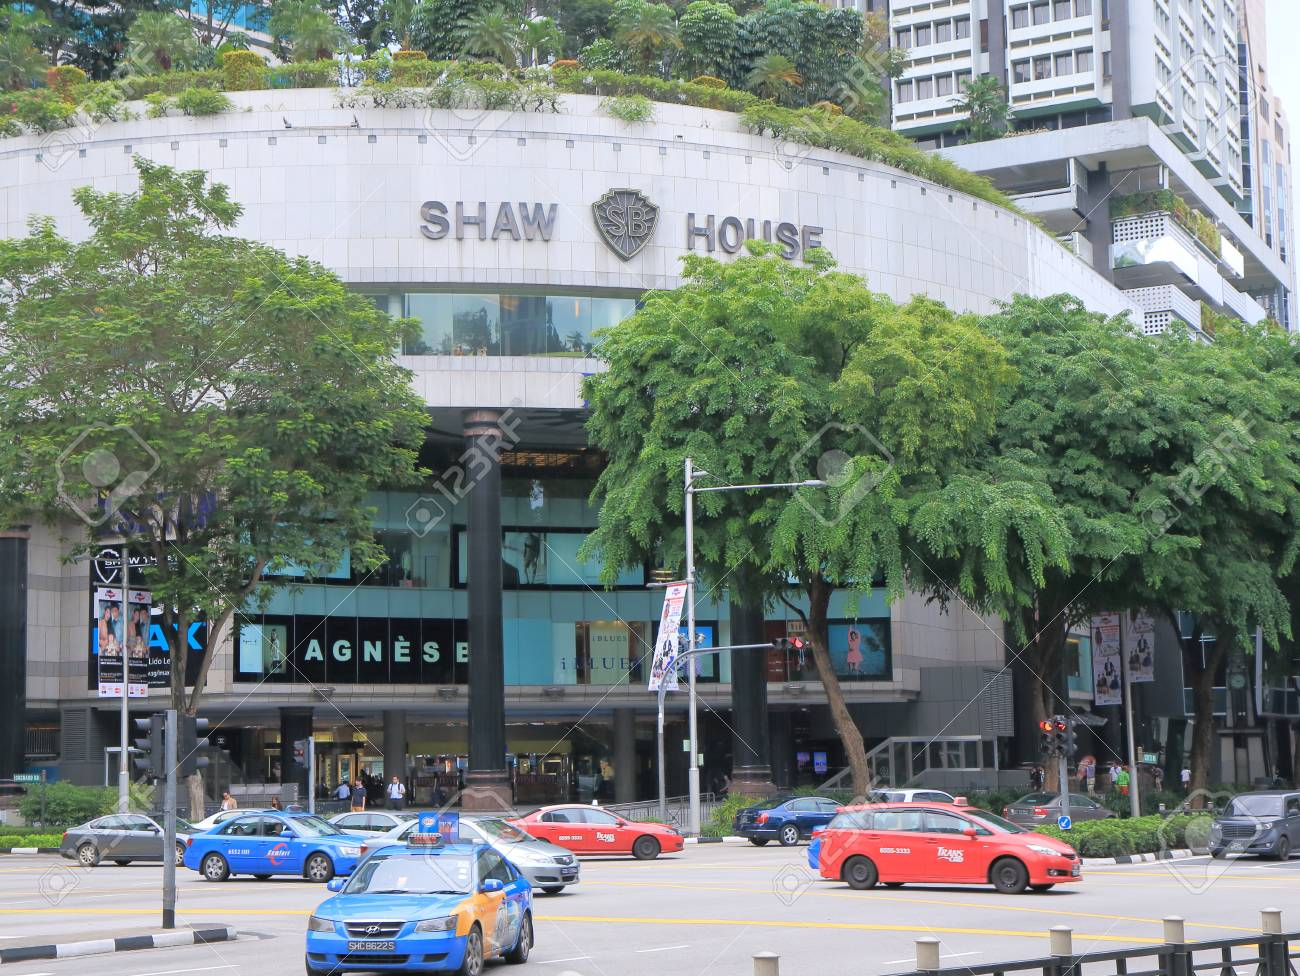 Singapore, Singapore - 26 May, 2014 Popular Shaw Centre shopping complex in Orchard road Singapore - 30246172